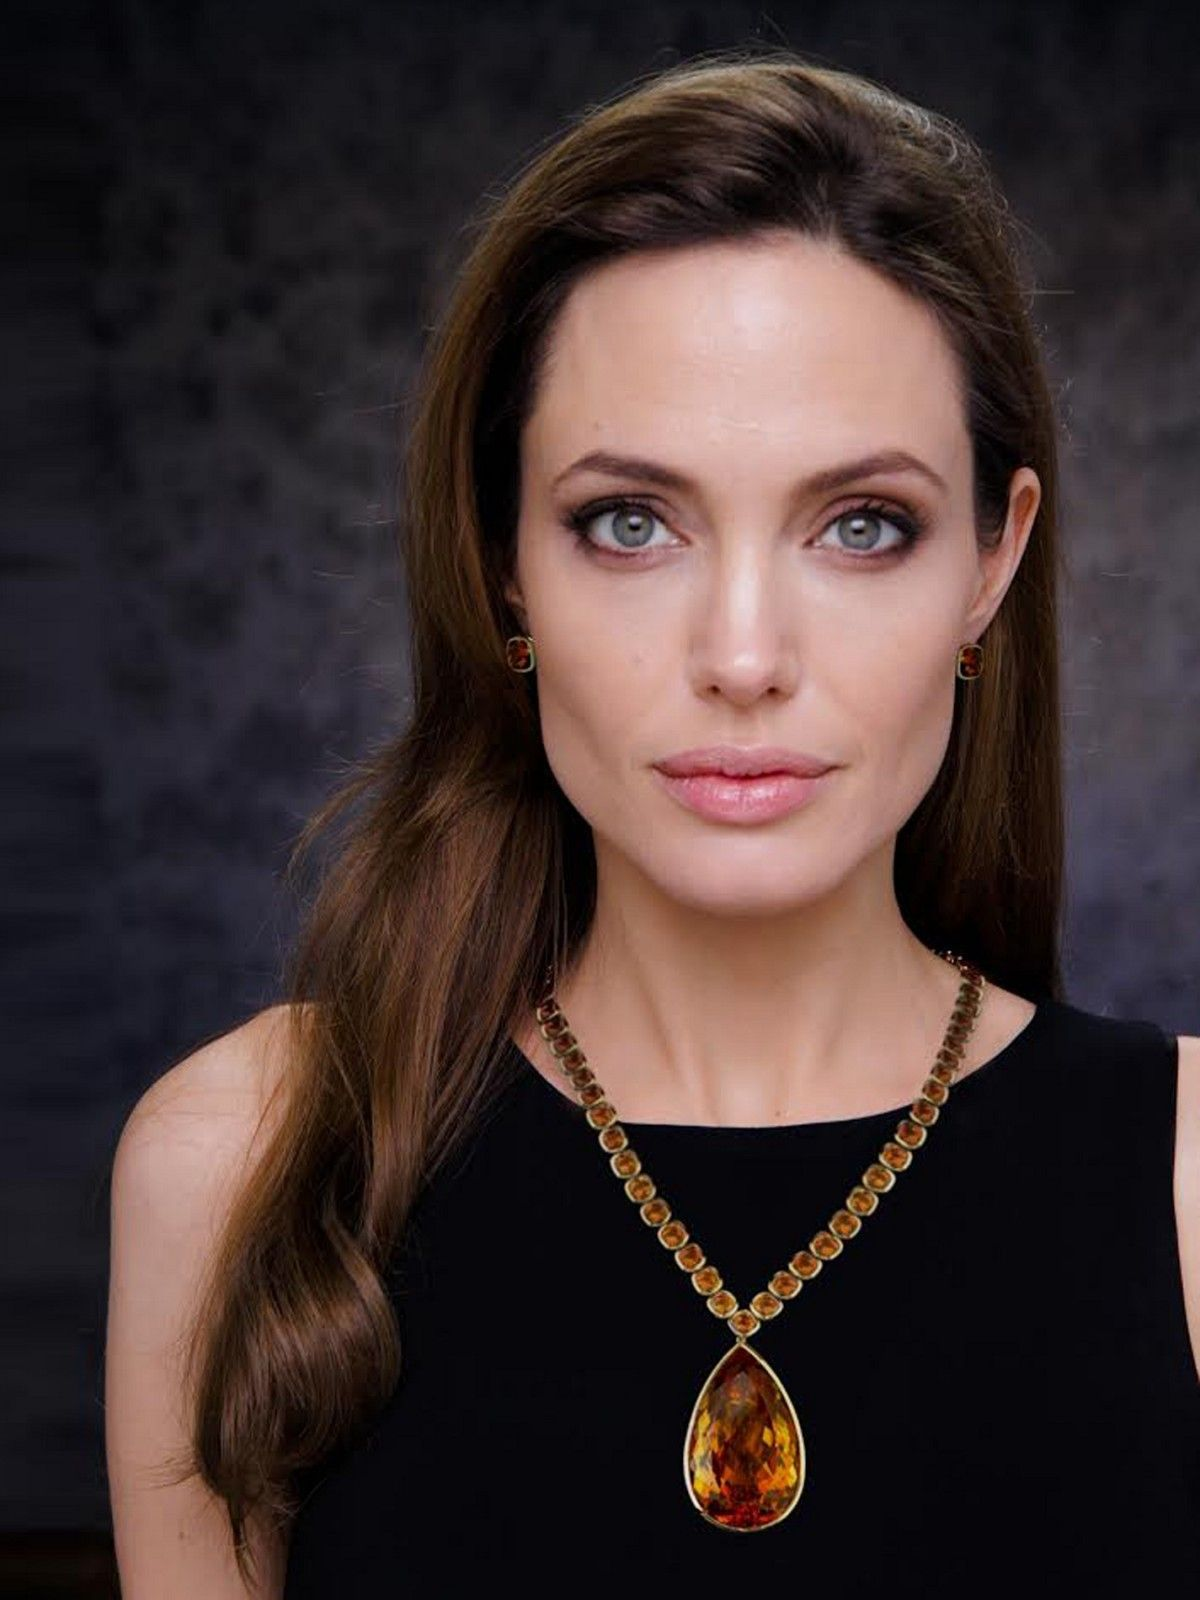 Angelina Jolie Donates Yellow Citrine Necklace To Smithsonian -  Angelina Jolie Donates Yellow Citrine Necklace To Smithsonian  - #Angelina #AngelinaJolie #Beyonce #Citrine #Donates #jolie #Necklace #Smithsonian #StylingTips #Yellow